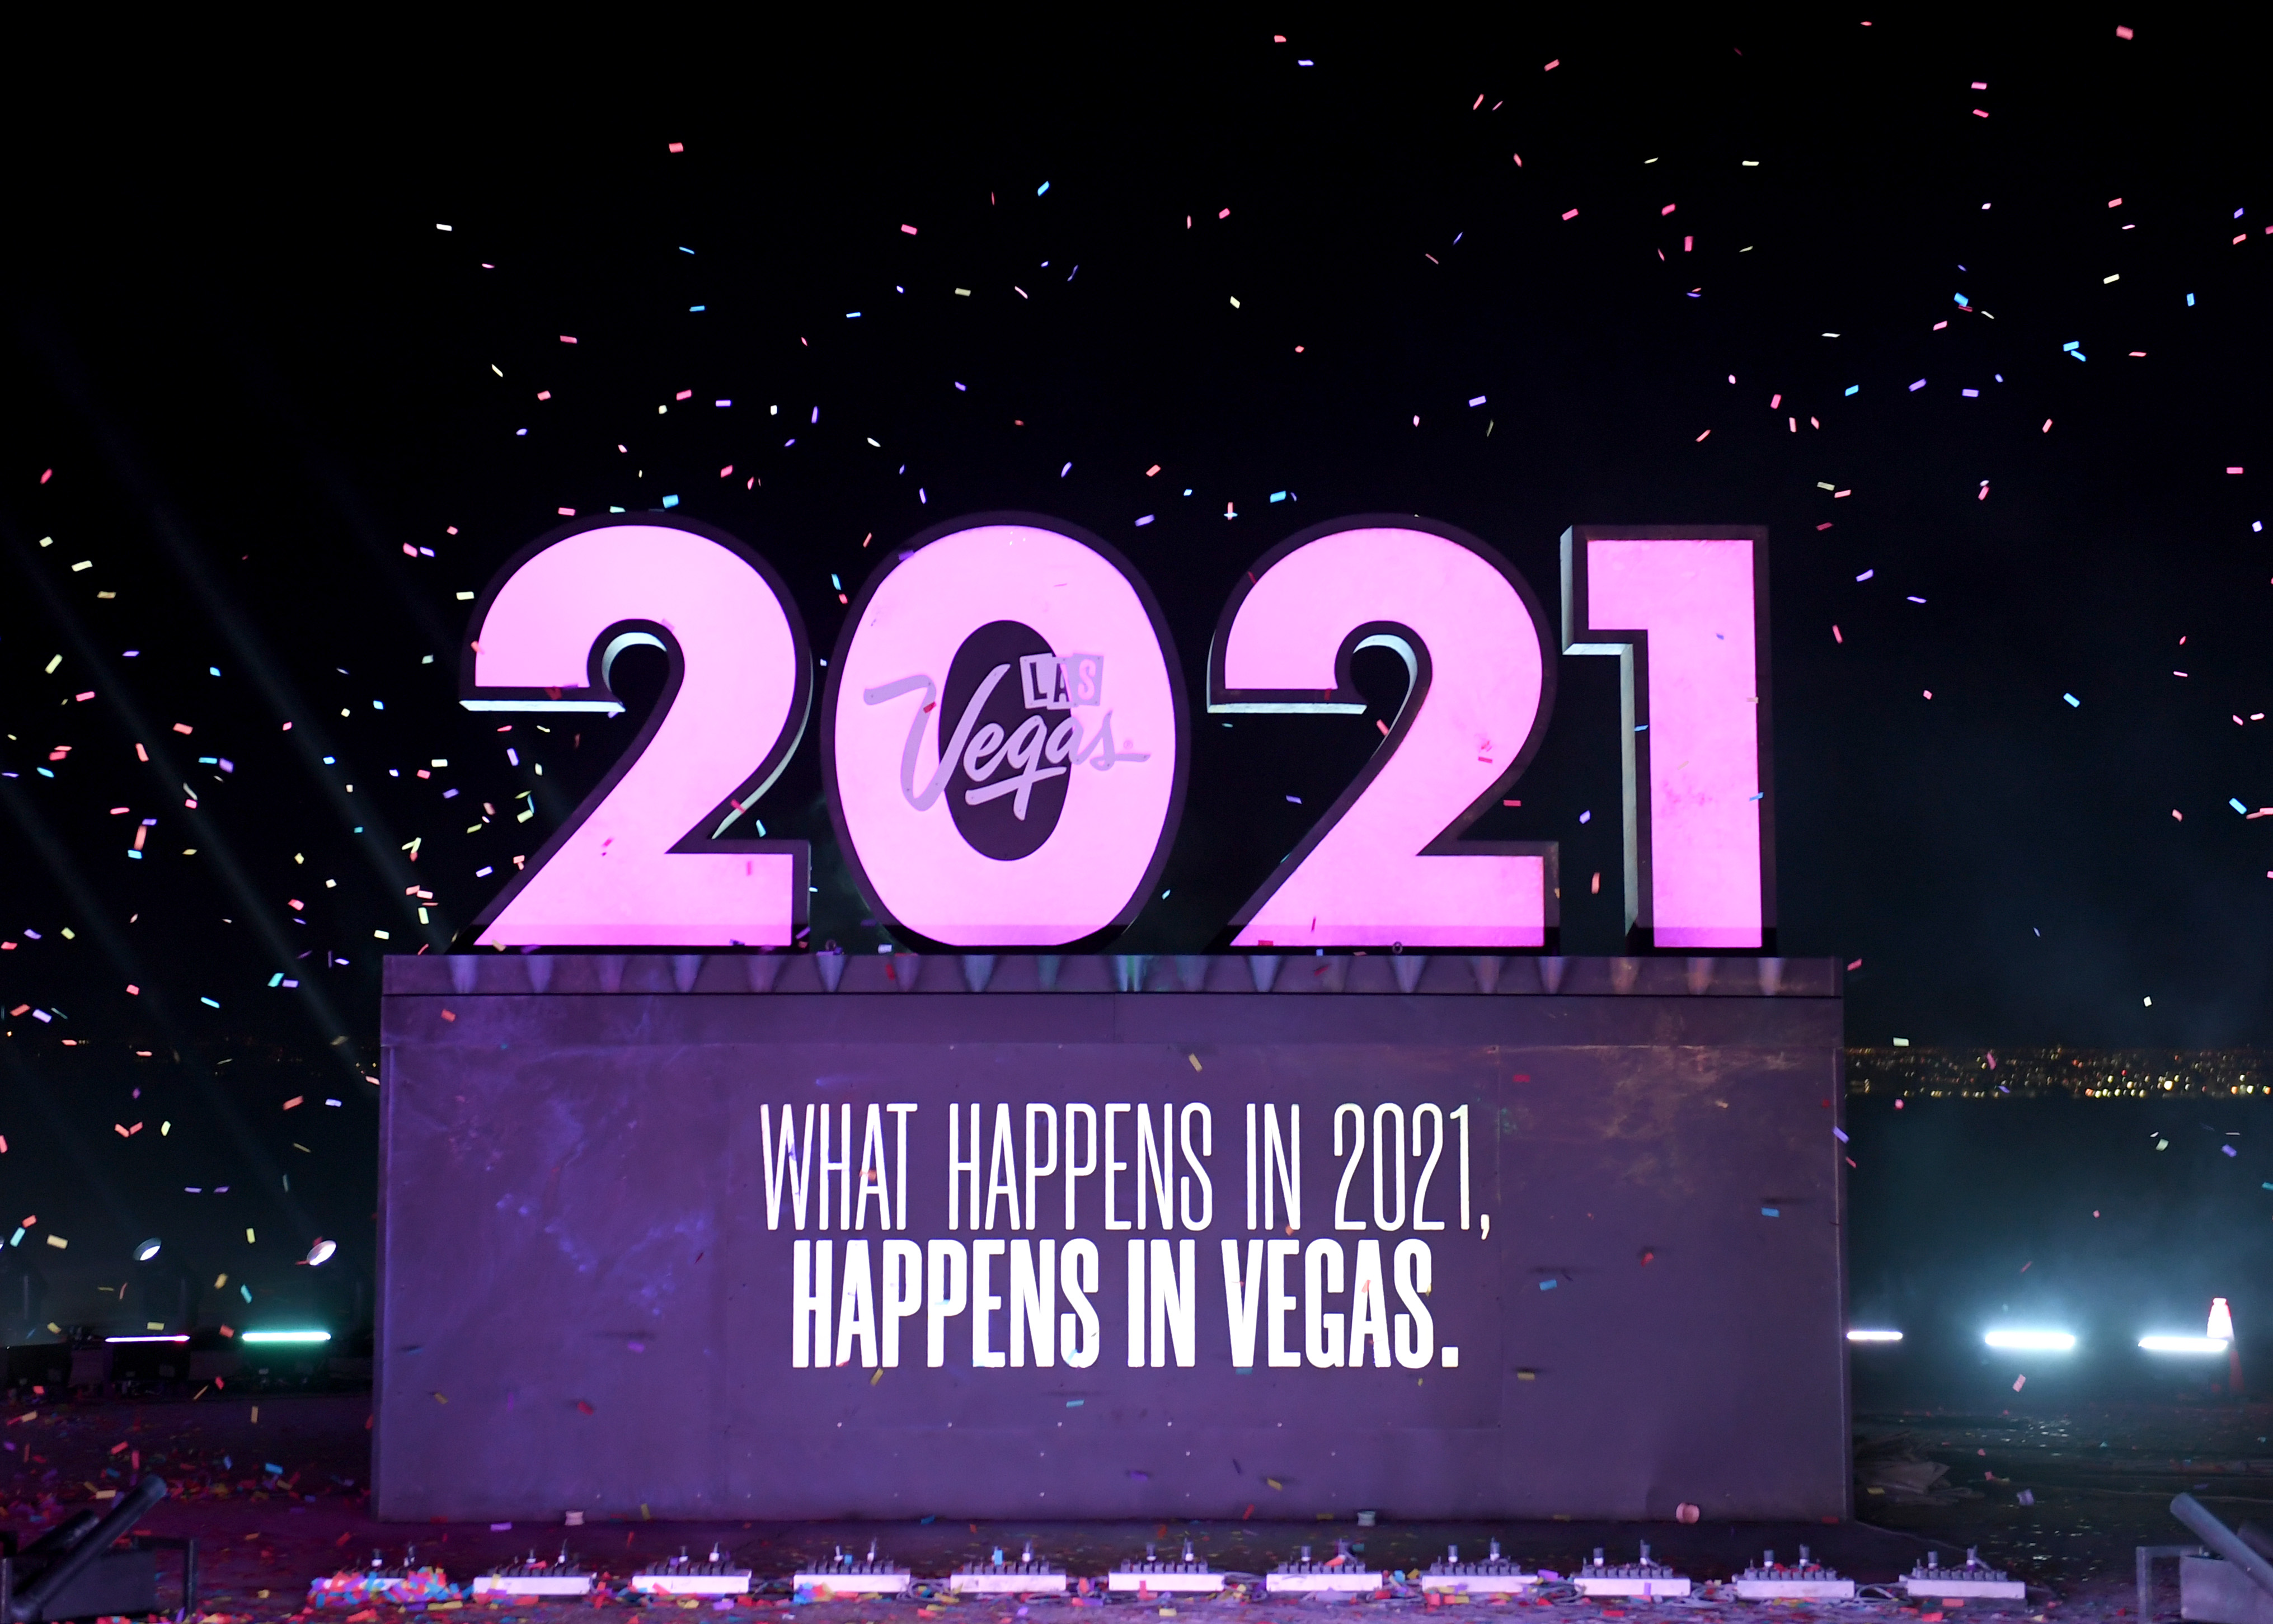 """LAS VEGAS, NEVADA – DECEMBER 31: Las Vegas Tells 2020 to """"Kiss Off"""" with a virtual event featuring an exploding 2020 sign, a fireworks display and the reveal of a 2021 sign at the Las Vegas Motor Speedway on December 31, 2020 in Las Vegas, Nevada. (Photo by Ethan Miller/Getty Images for LVCVA)"""